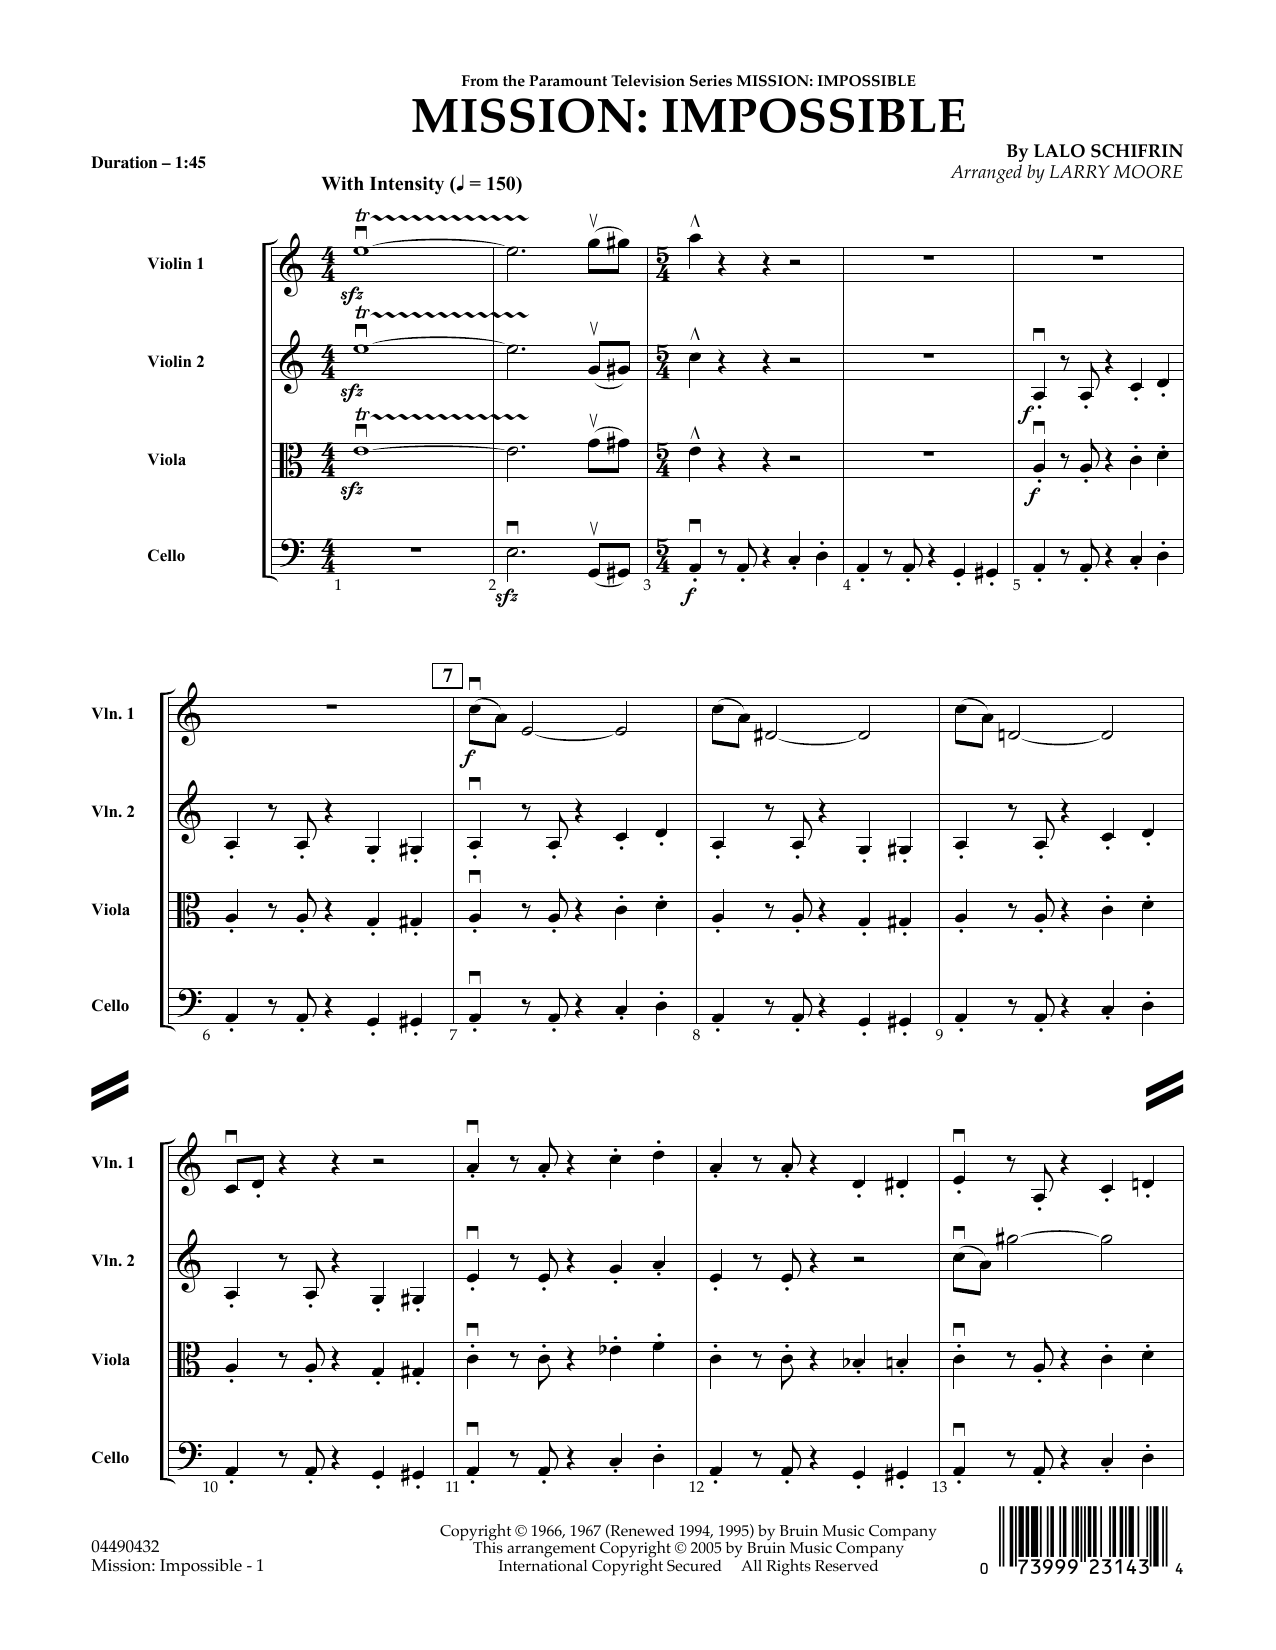 Mission: Impossible Theme (COMPLETE) sheet music for orchestra (Strings) by Larry Moore and Lalo Schifrin. Score Image Preview.